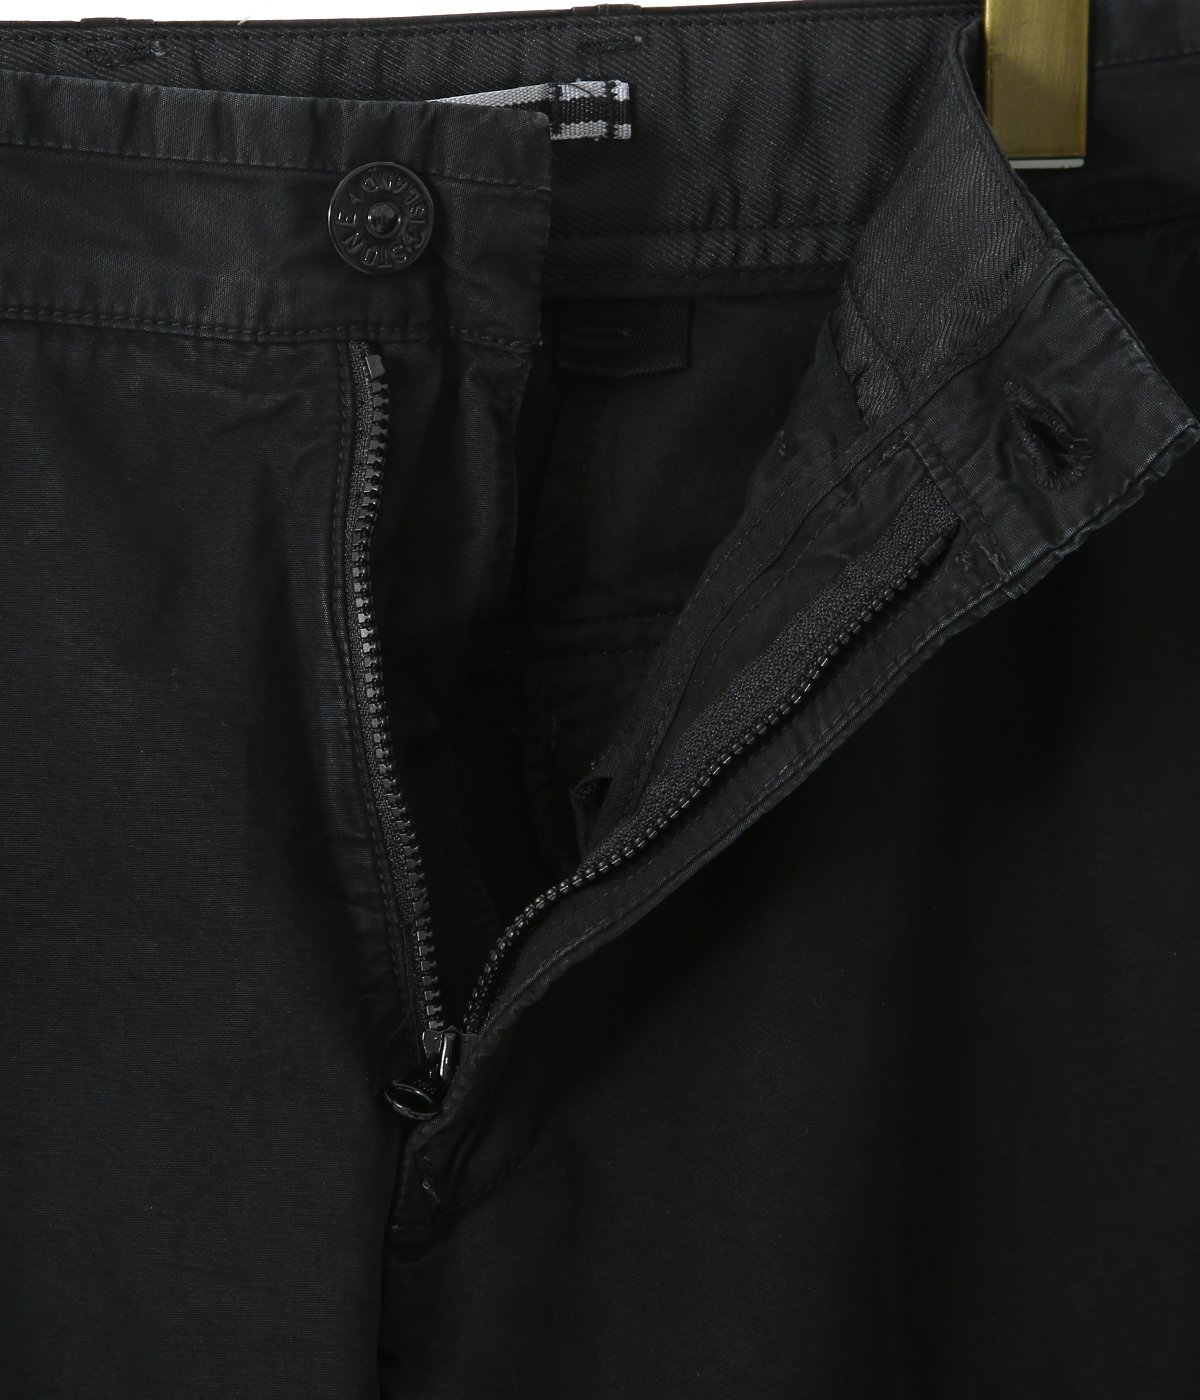 BRUSHED COTTON CANVAS OLD EFFECT CARGO PANTS